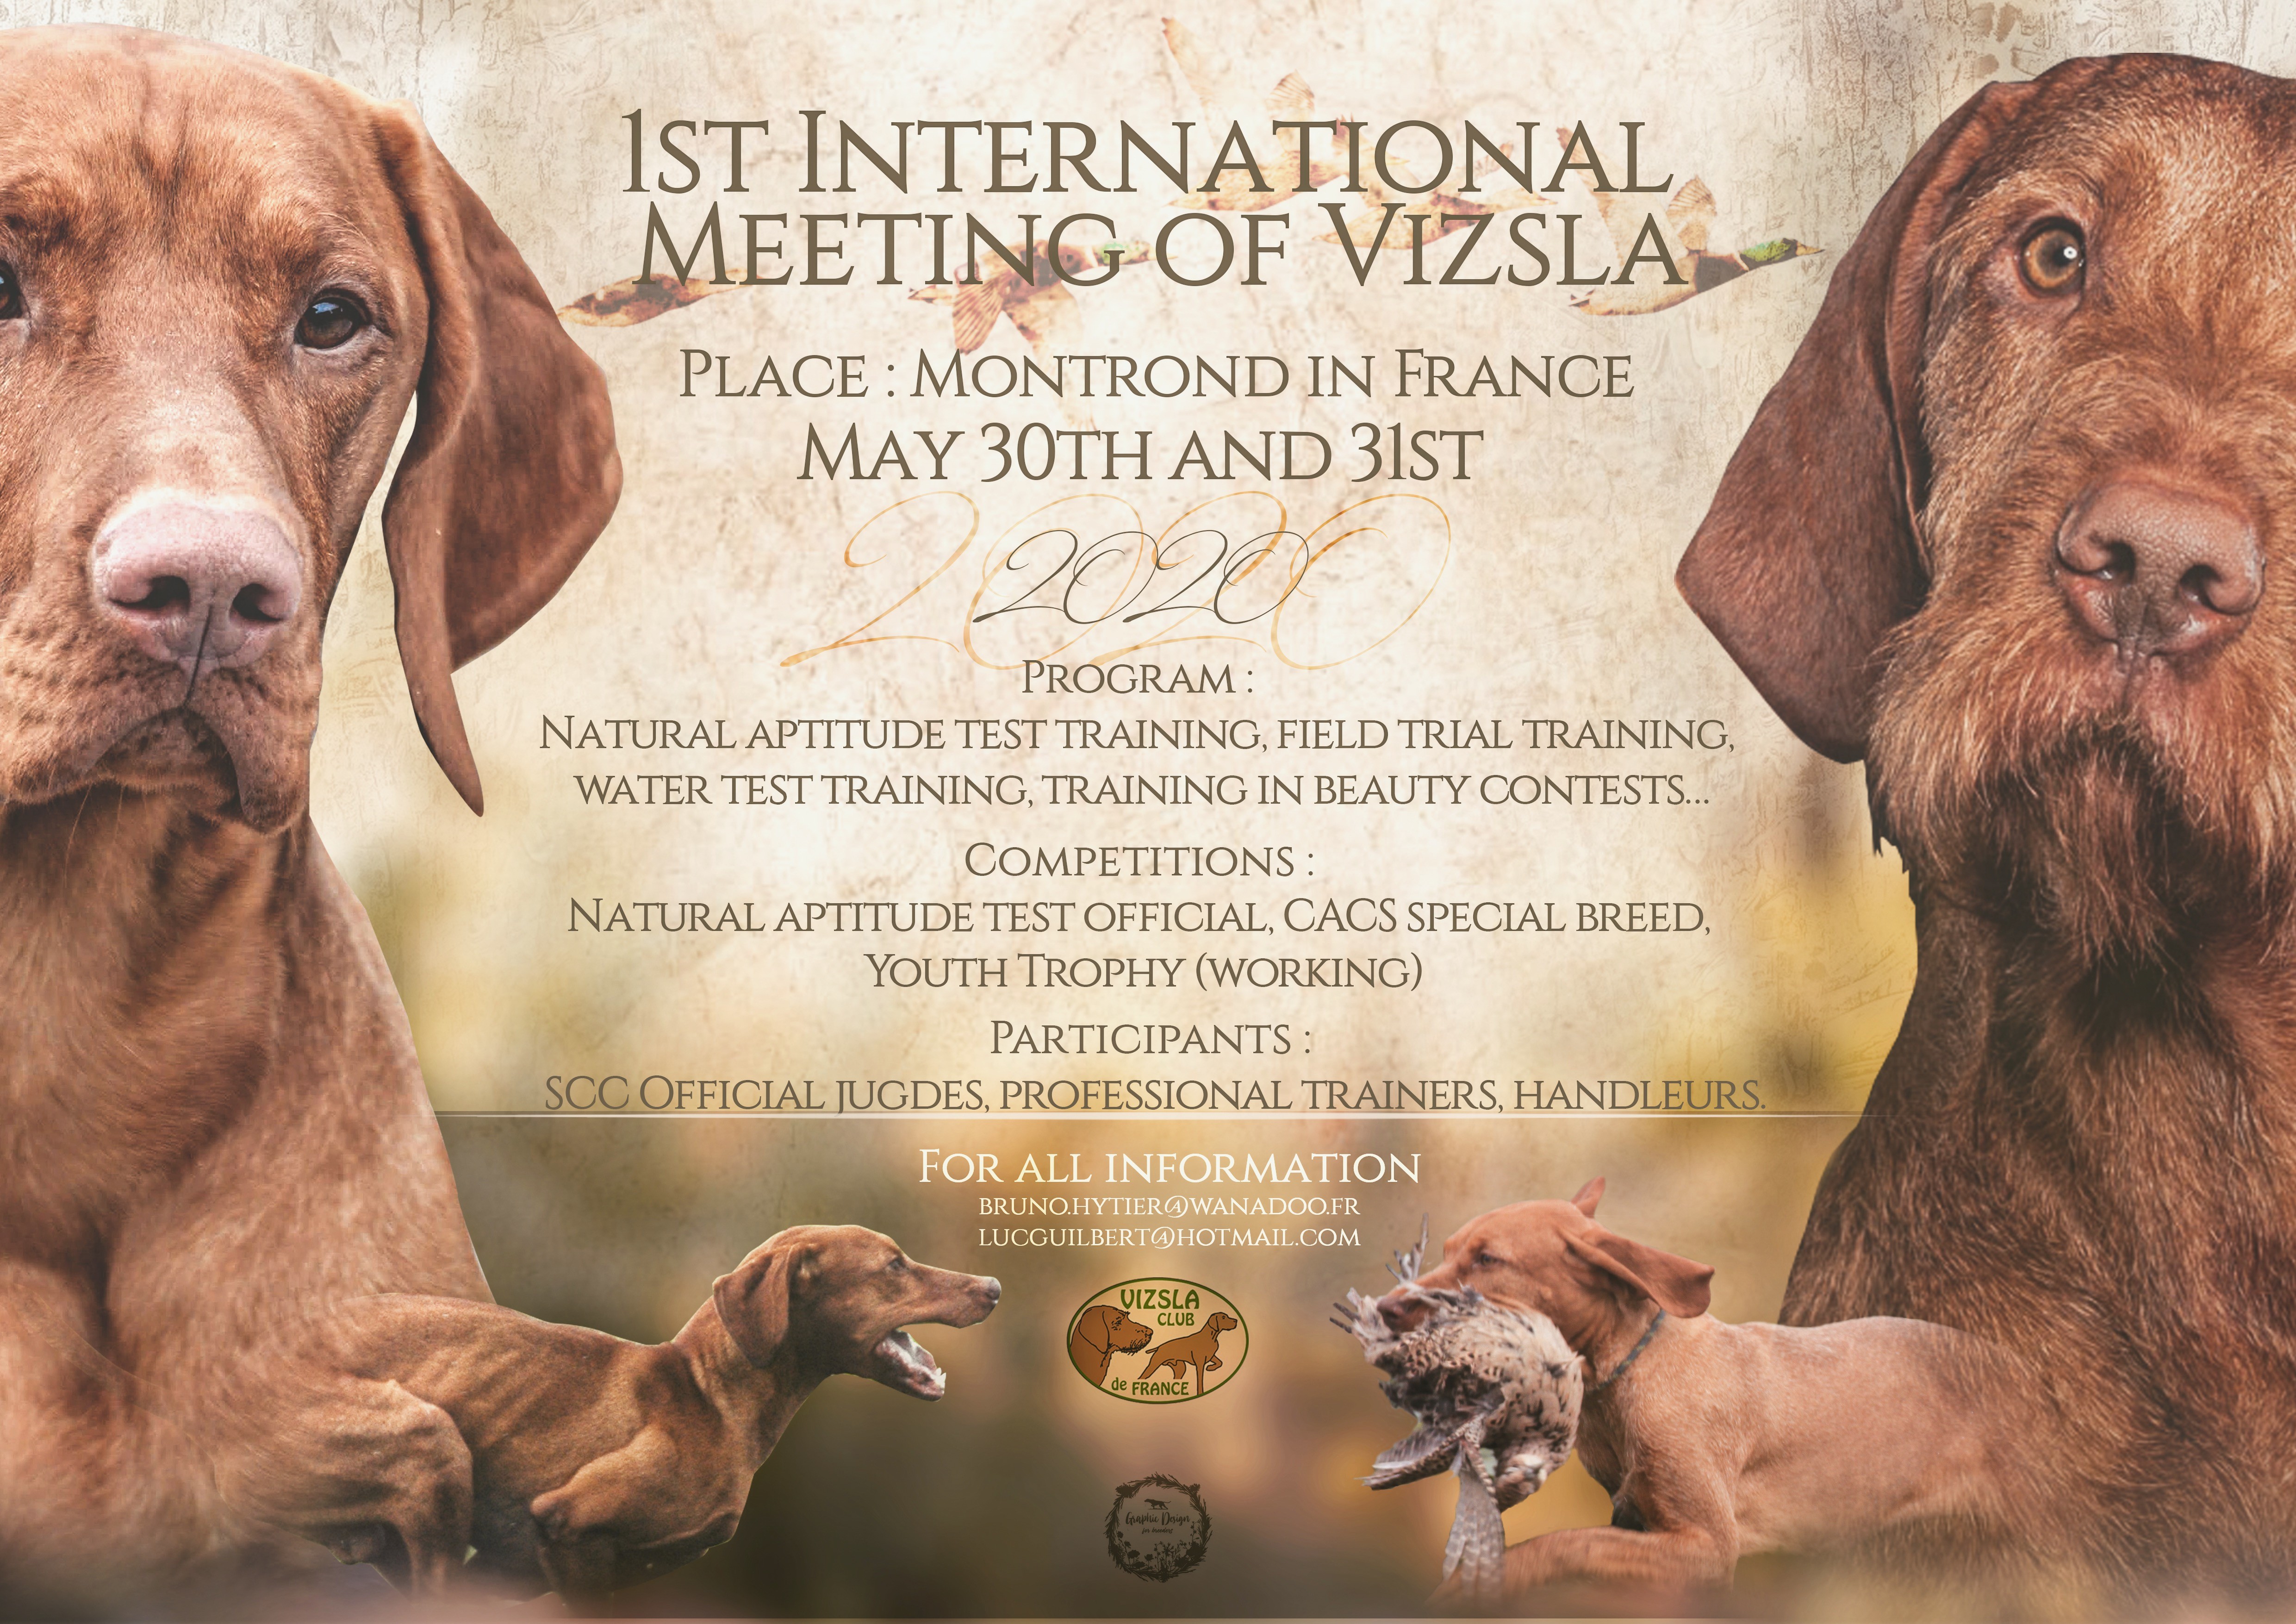 1st int meeting of vizsla France